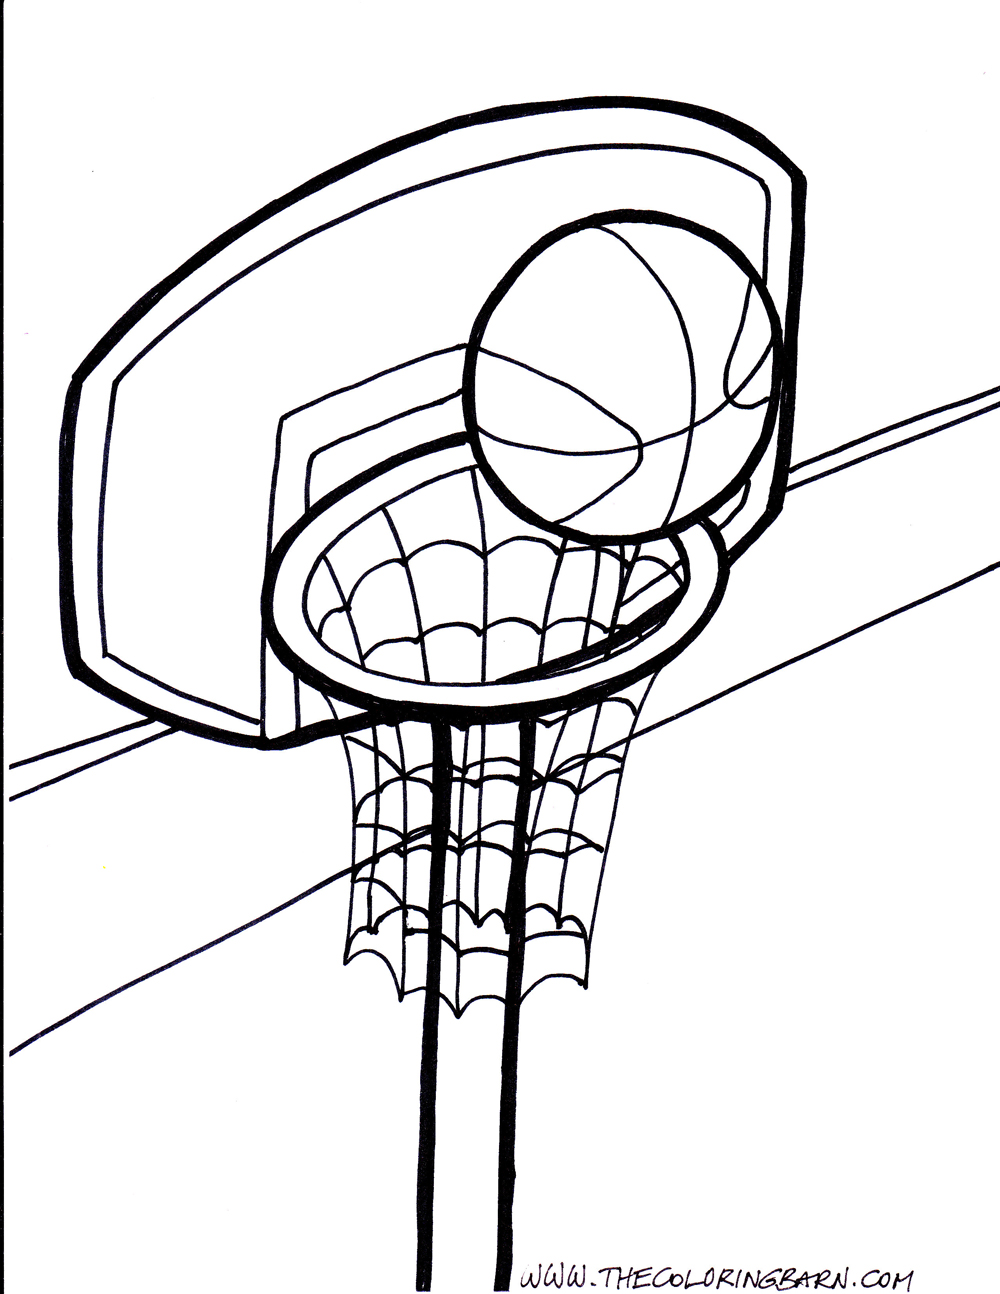 Basketball hoop free colouring pages for Free basketball coloring pages